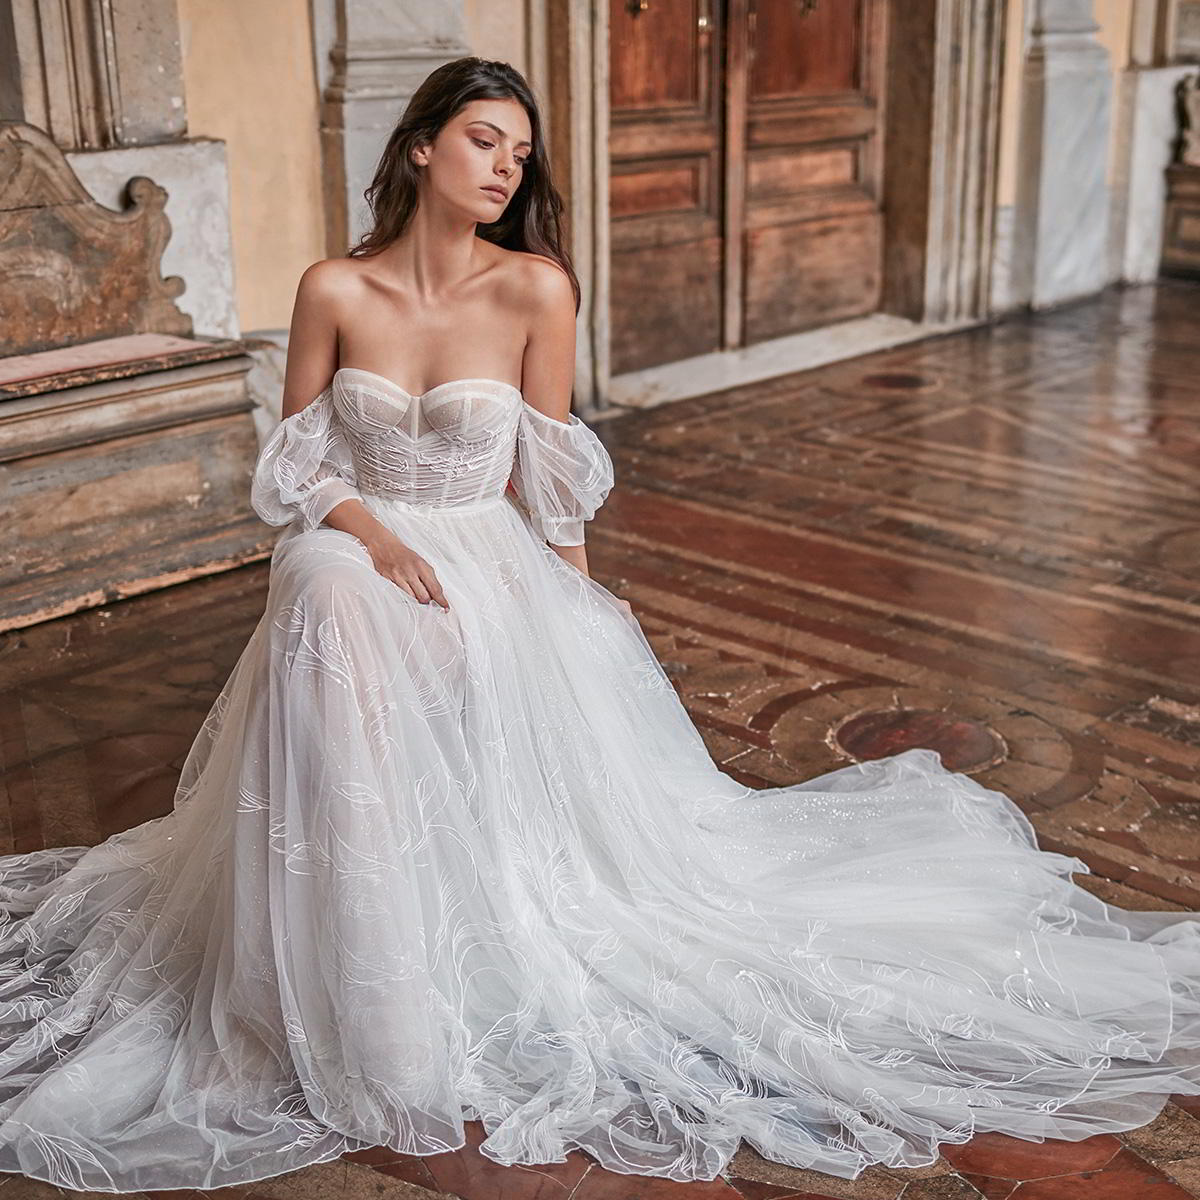 Roman Wedding Gowns: Gali Karten 2020 Wedding Dresses